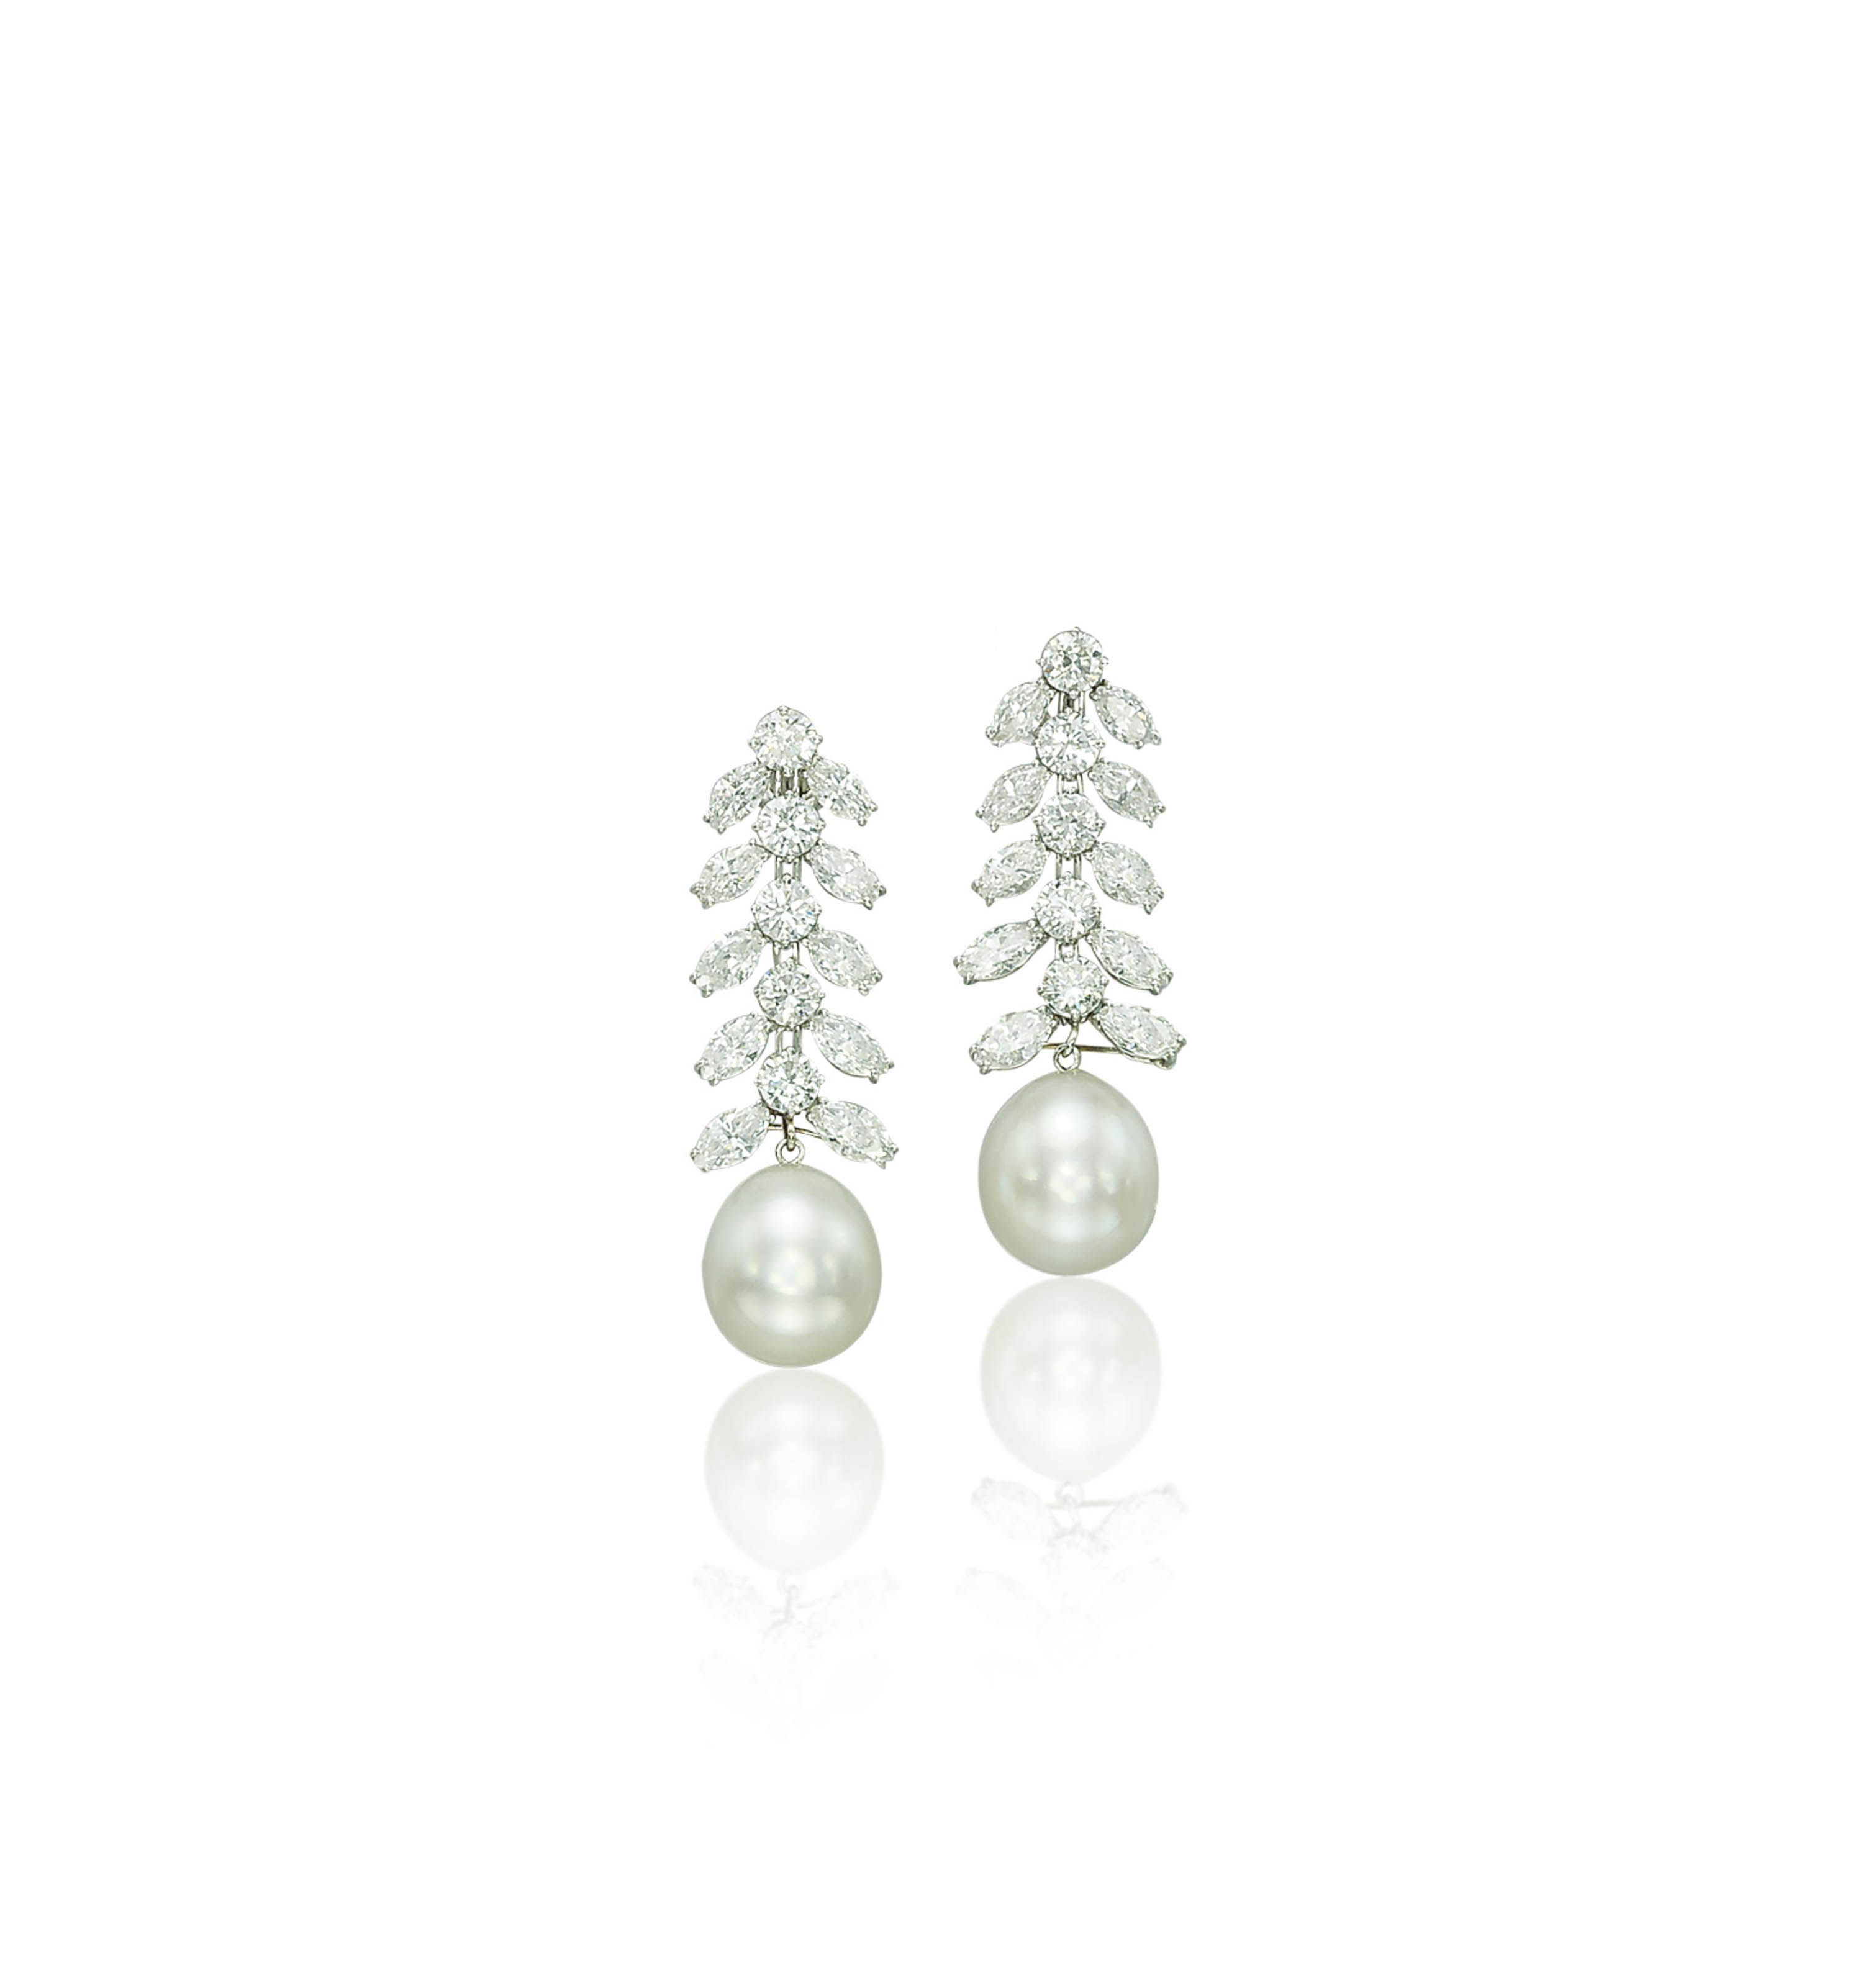 A PAIR OF CULTURED PEARL AND DIAMOND EAR PENDANTS, BY RUSER